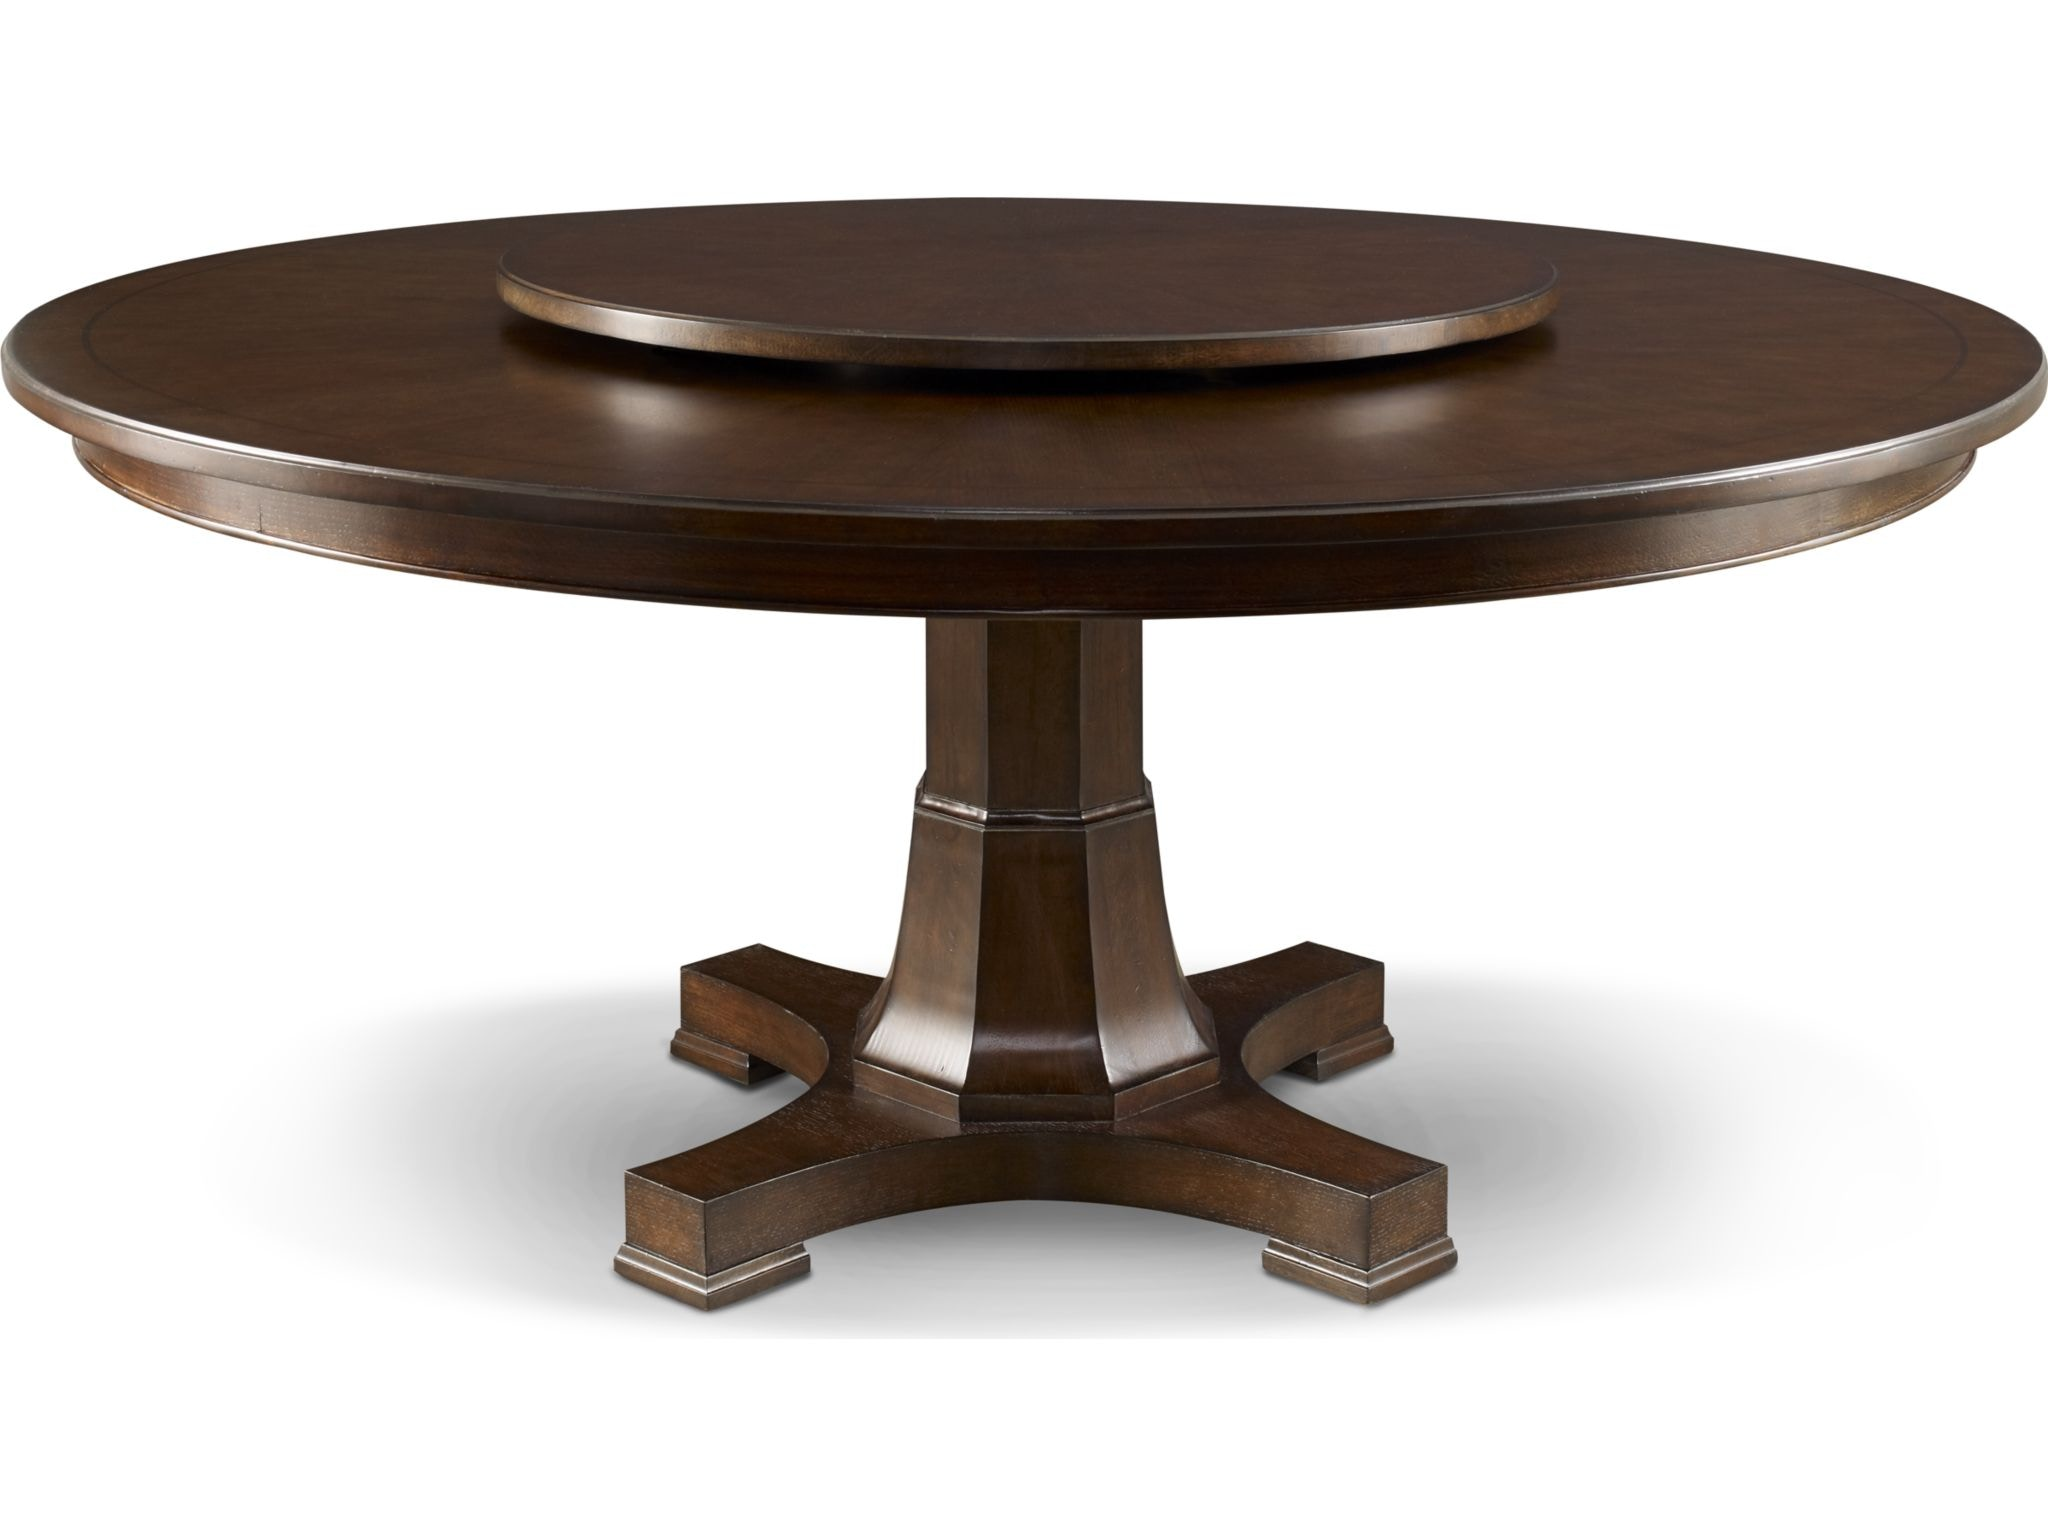 Round Dining Tables Melbourne : 83421 730 from www.scrapinsider.com size 1024 x 768 jpeg 31kB